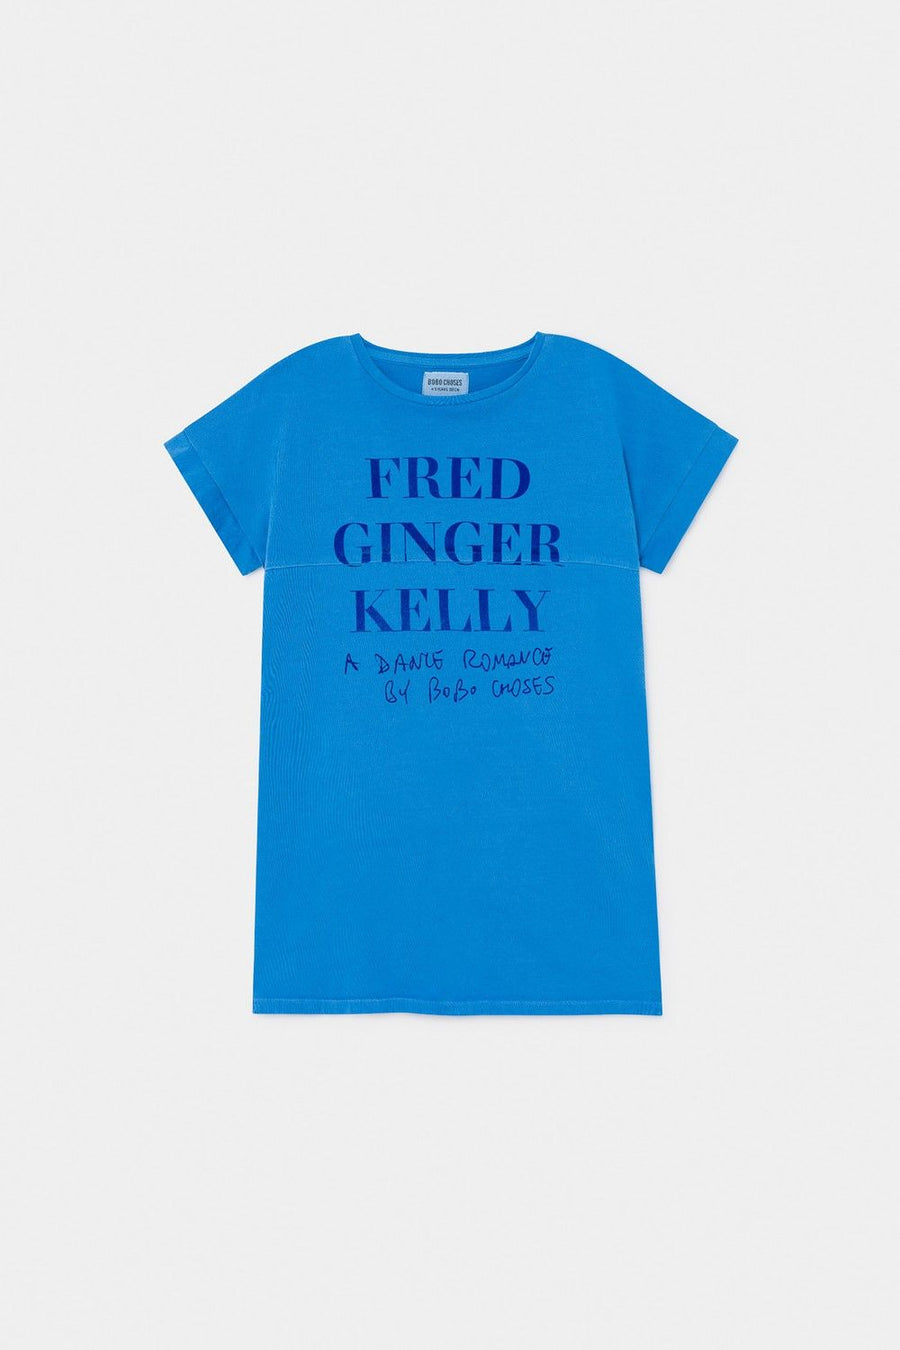 Bobo Choses Fred, Ginger & Kelly T-Shirt Dress